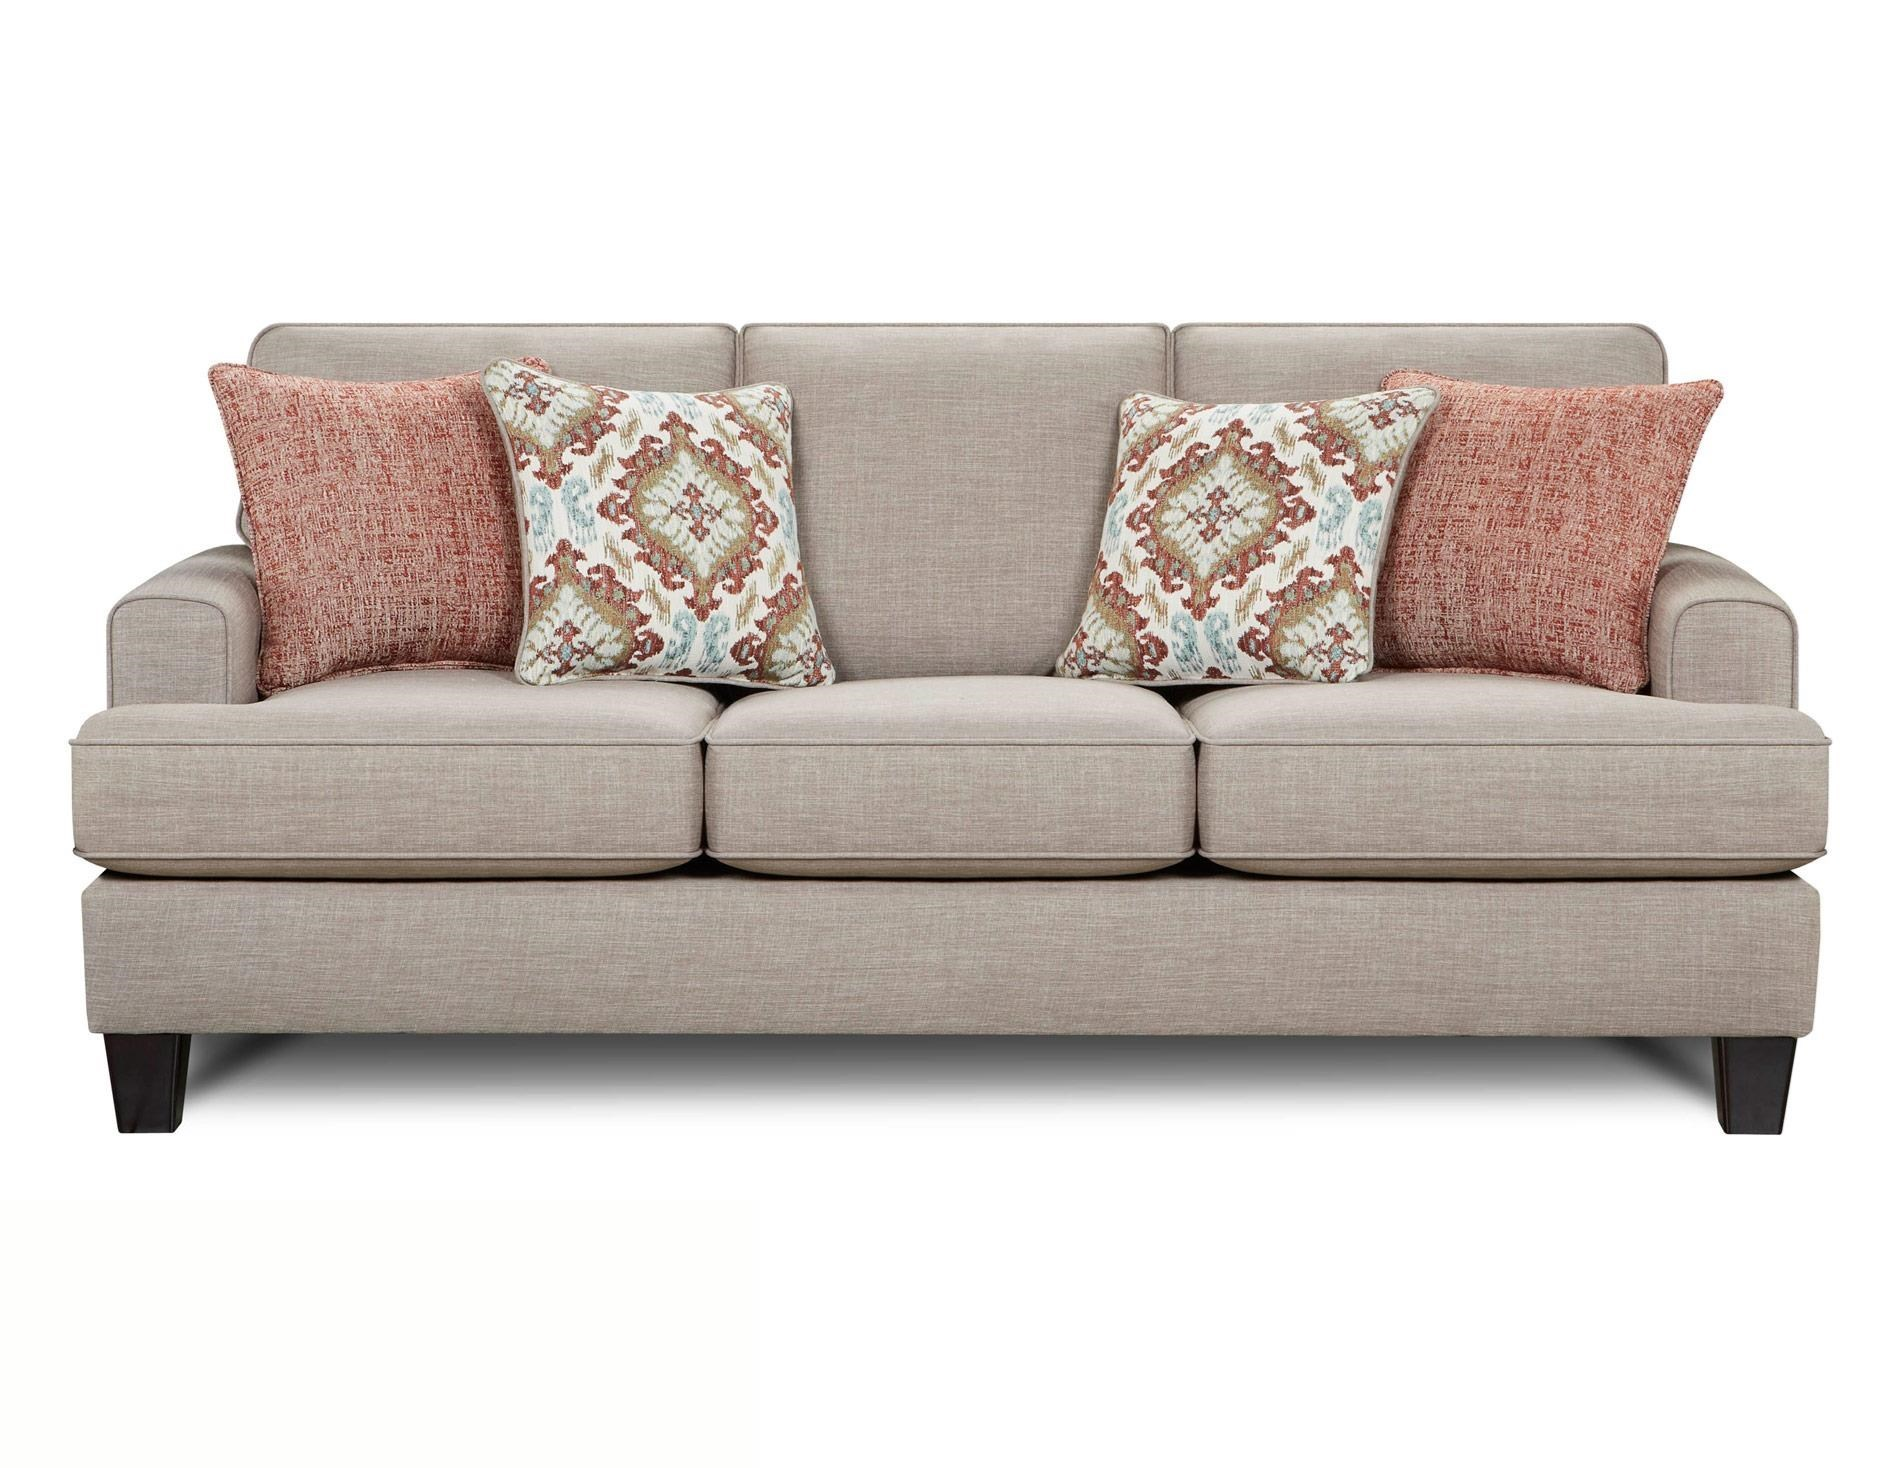 Beau Fusion Furniture Quinn TwilightSofa